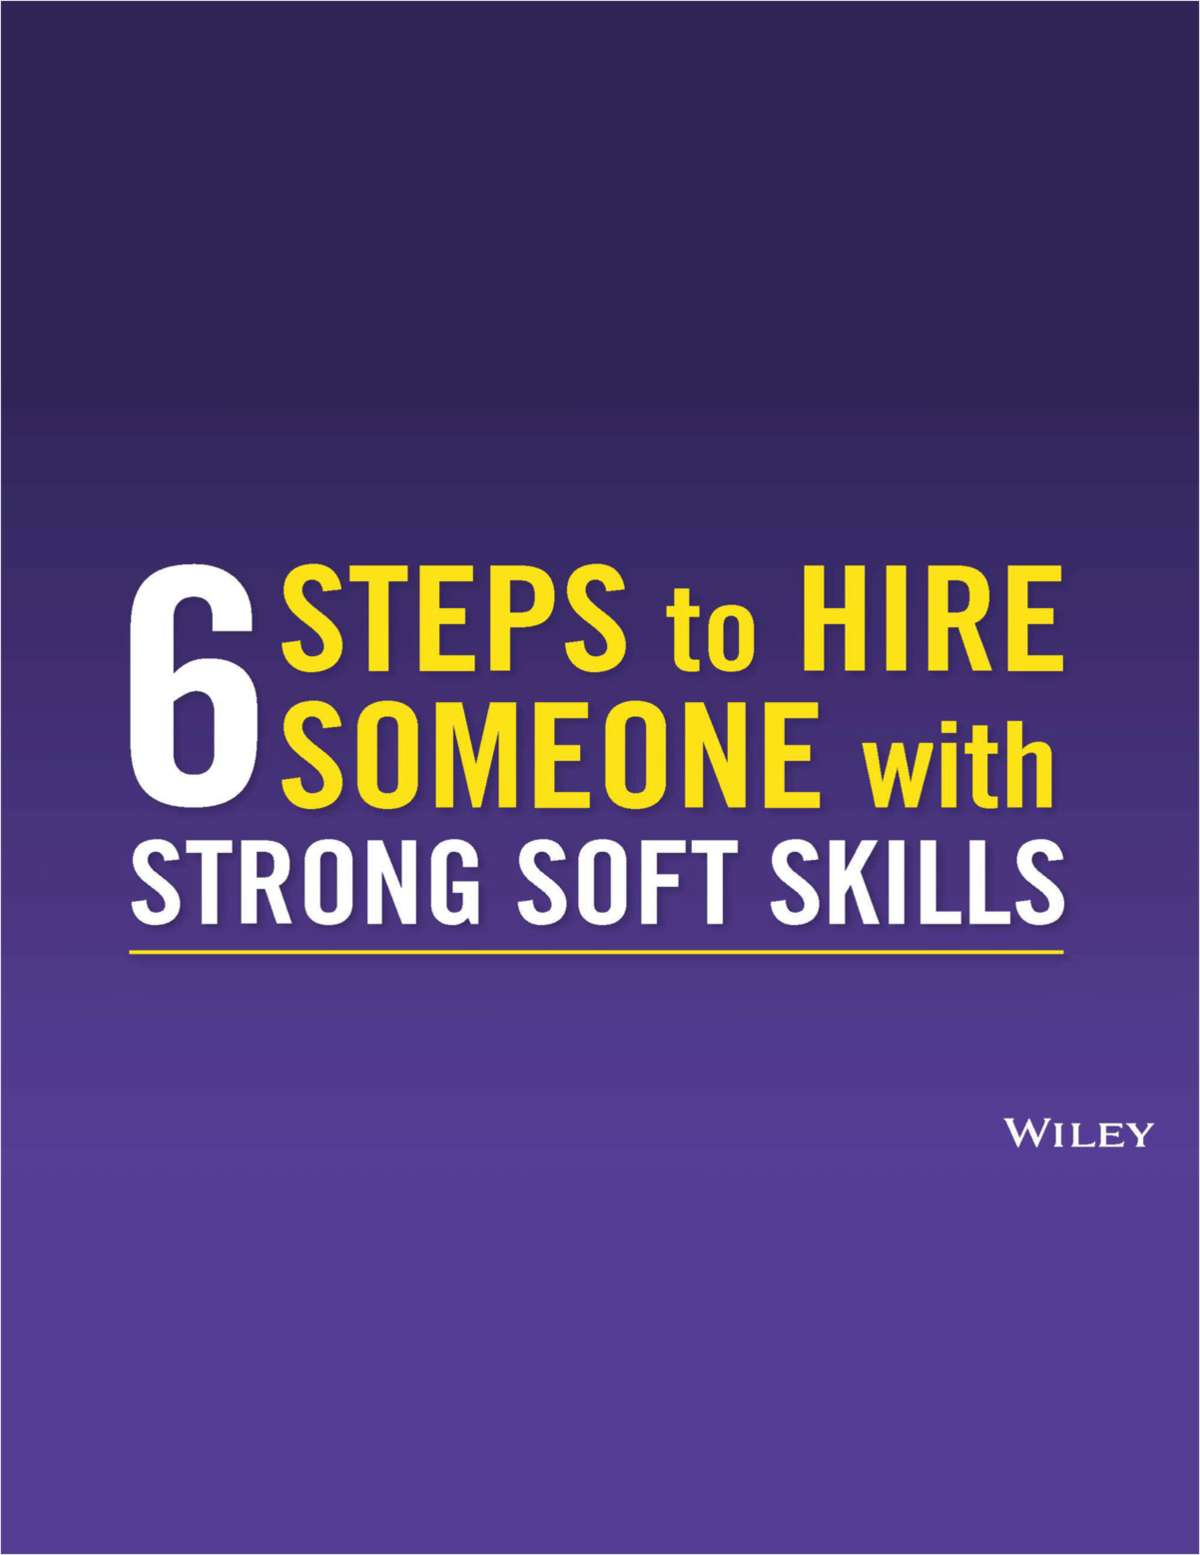 6 Steps to Hire Someone with Strong Soft Skills